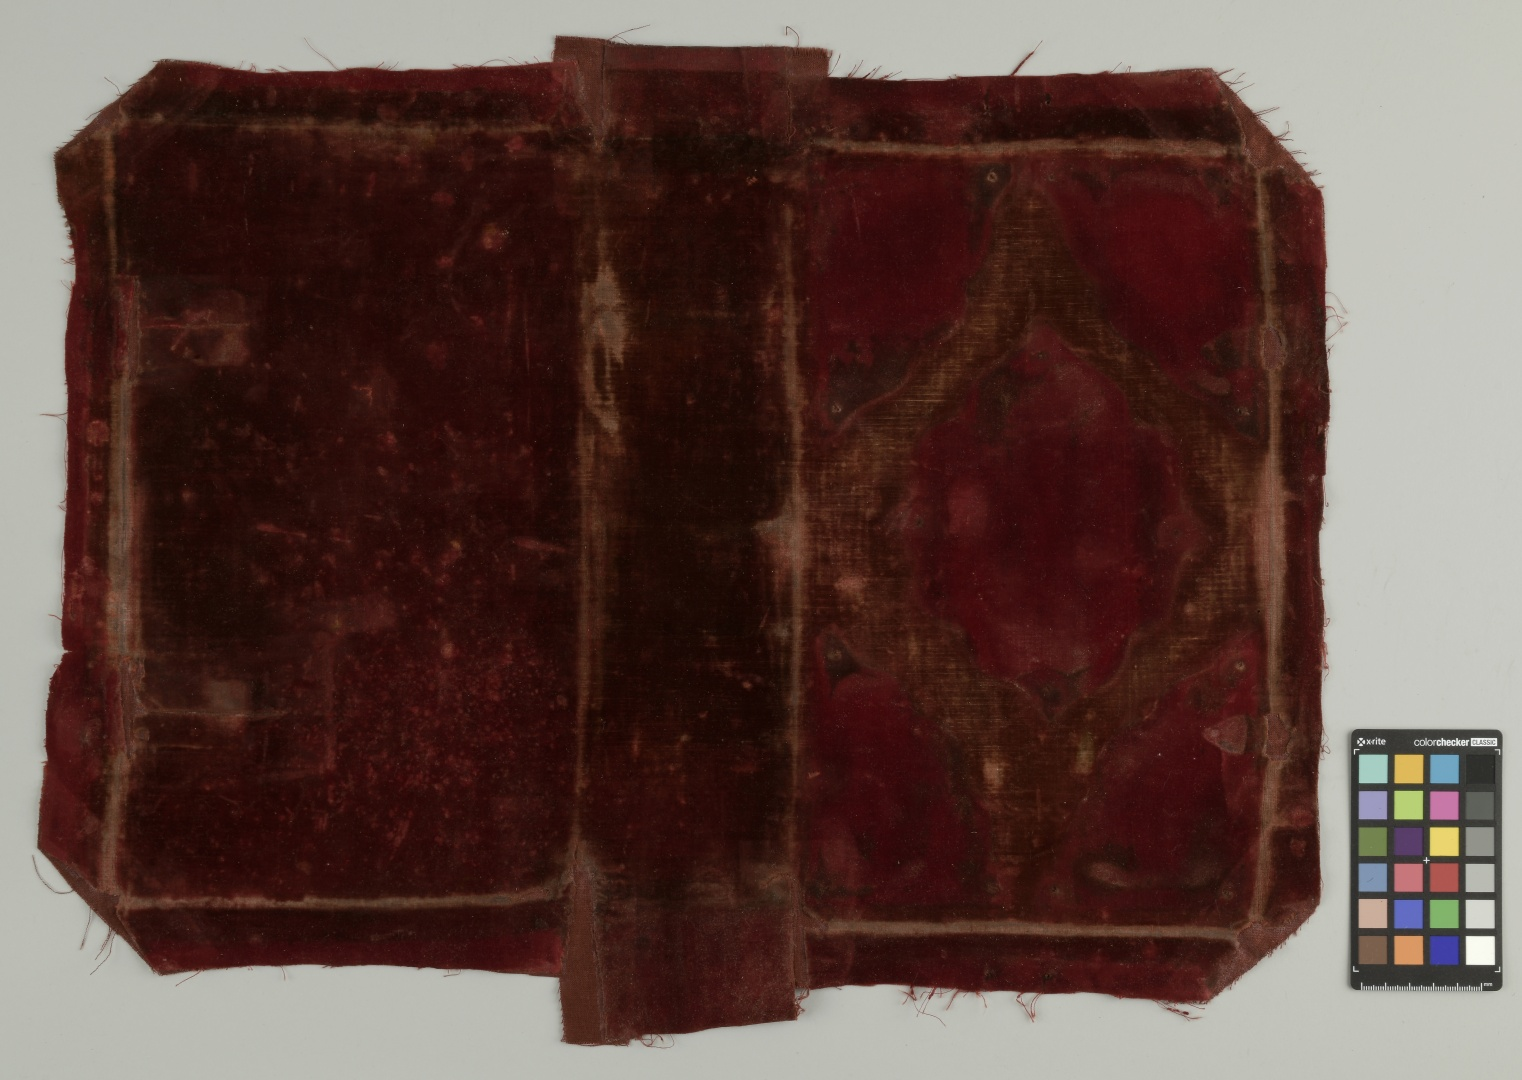 ill 28. It was decided to conserve the silk velvet fabric instead replacing it with new material. The fabric was locally cleaned of wax spots and washed on a suction table with low vacuum pressure. The tears and rips were backed with silk cloth.